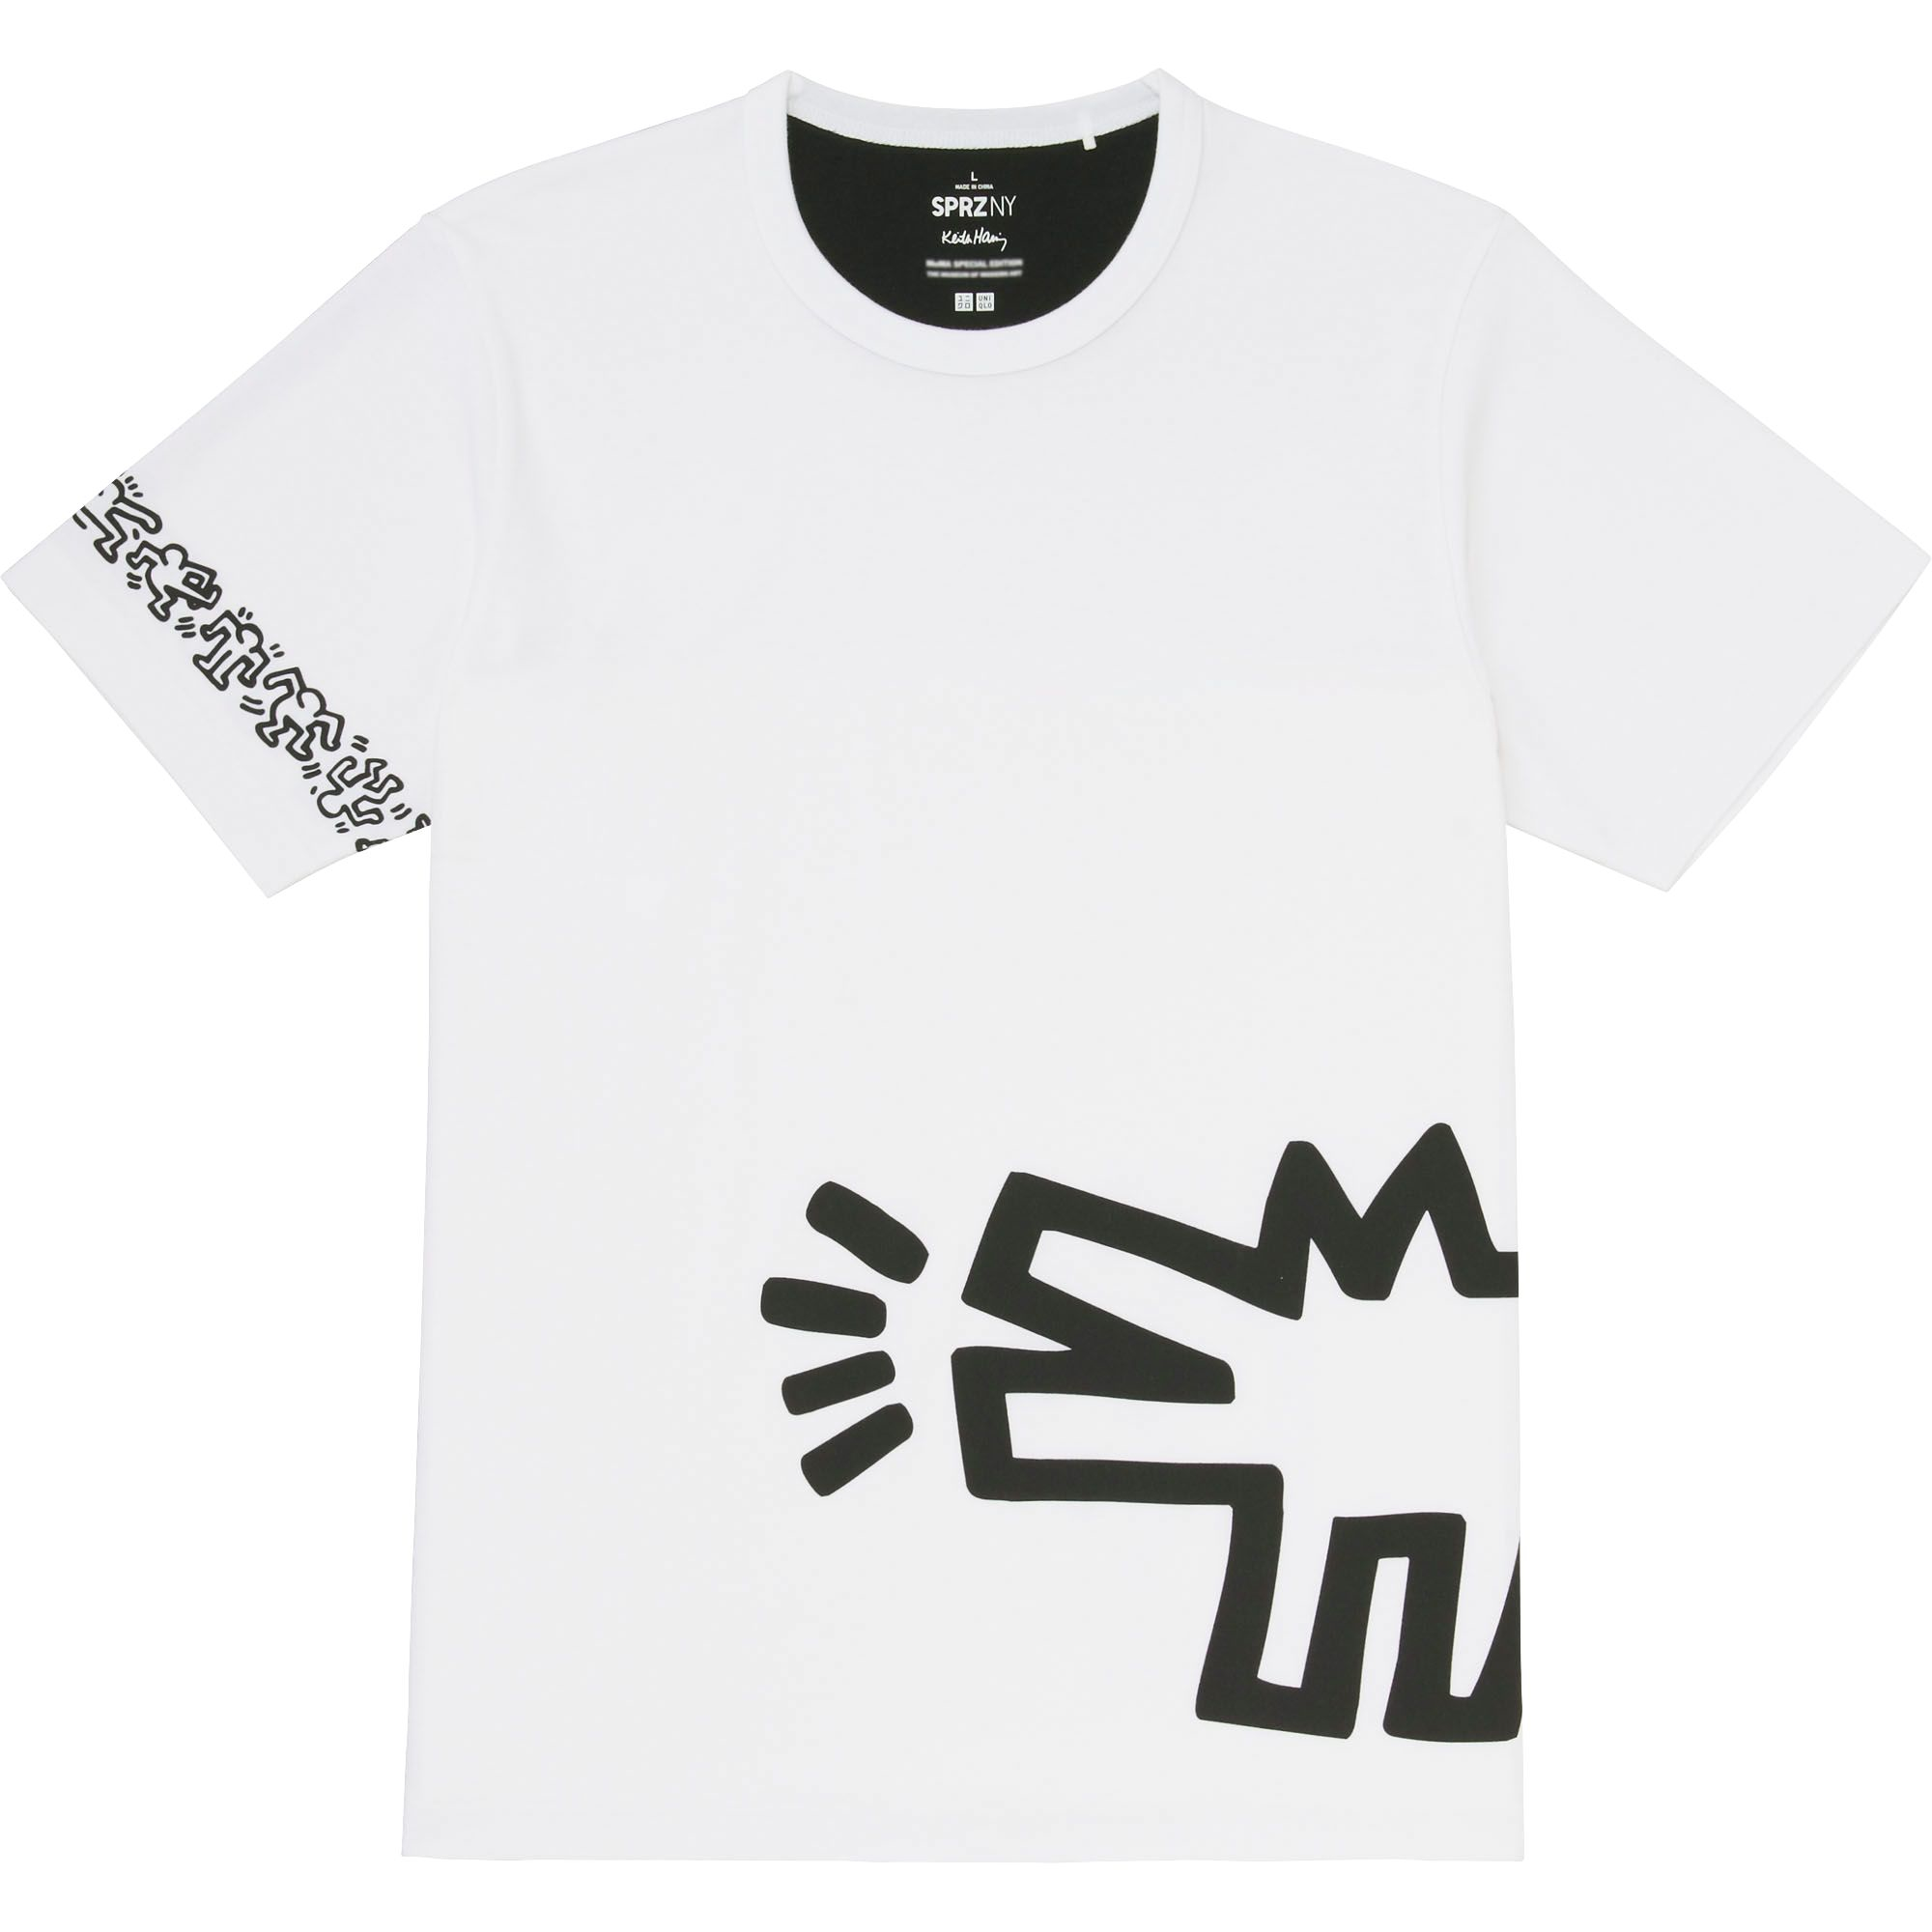 uniqlo men sprz ny graphic t shirt keith haring in white. Black Bedroom Furniture Sets. Home Design Ideas